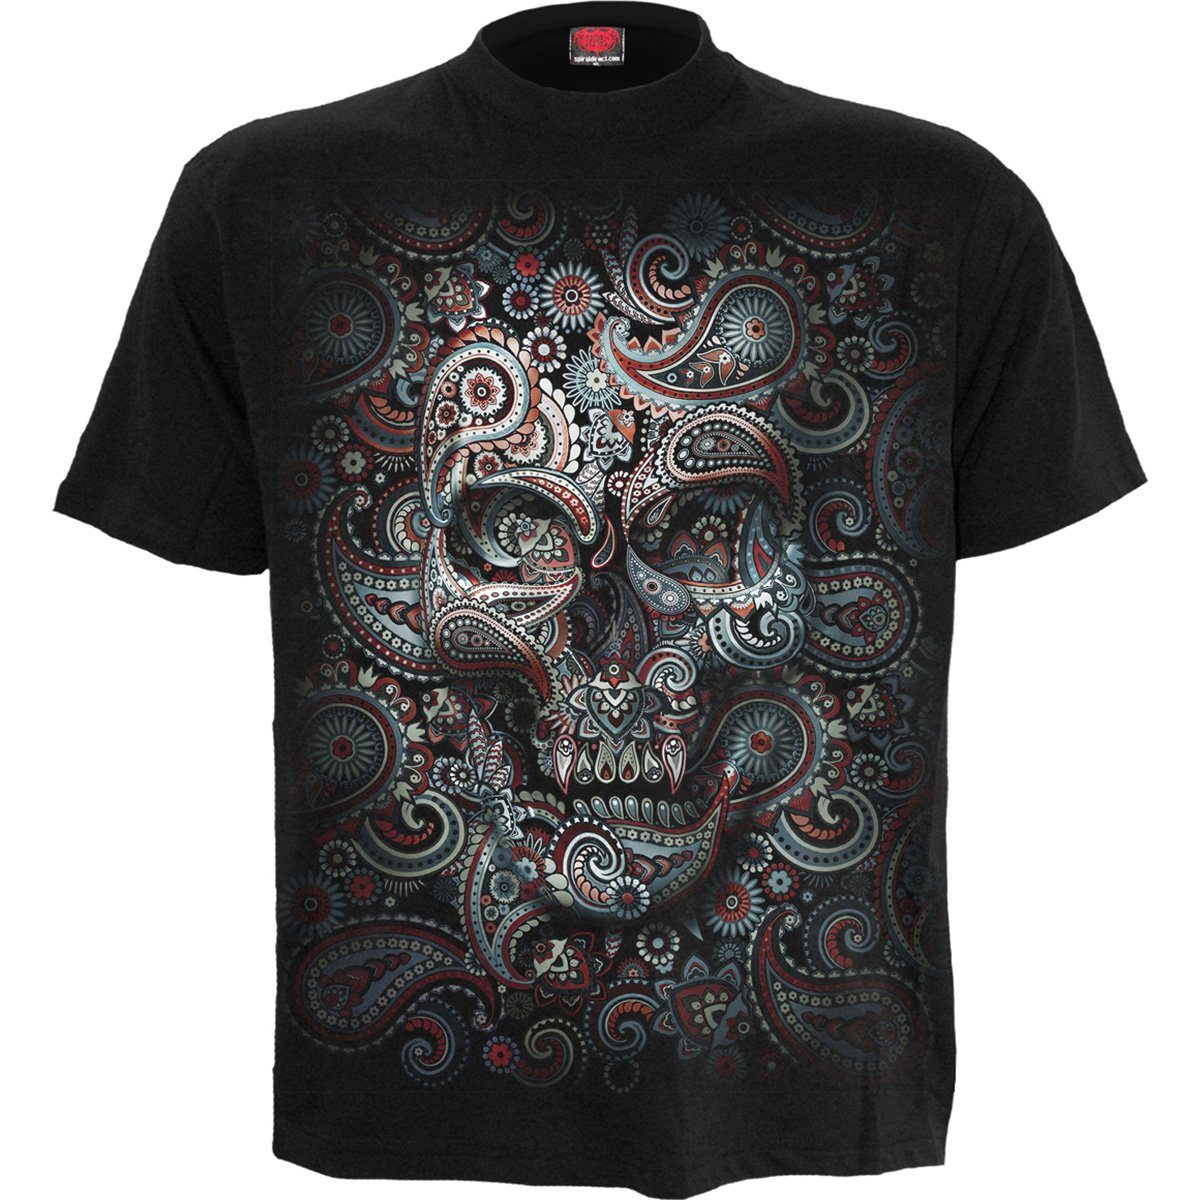 Tribal Skull Men's Black T-Shirt - Rebels Depot